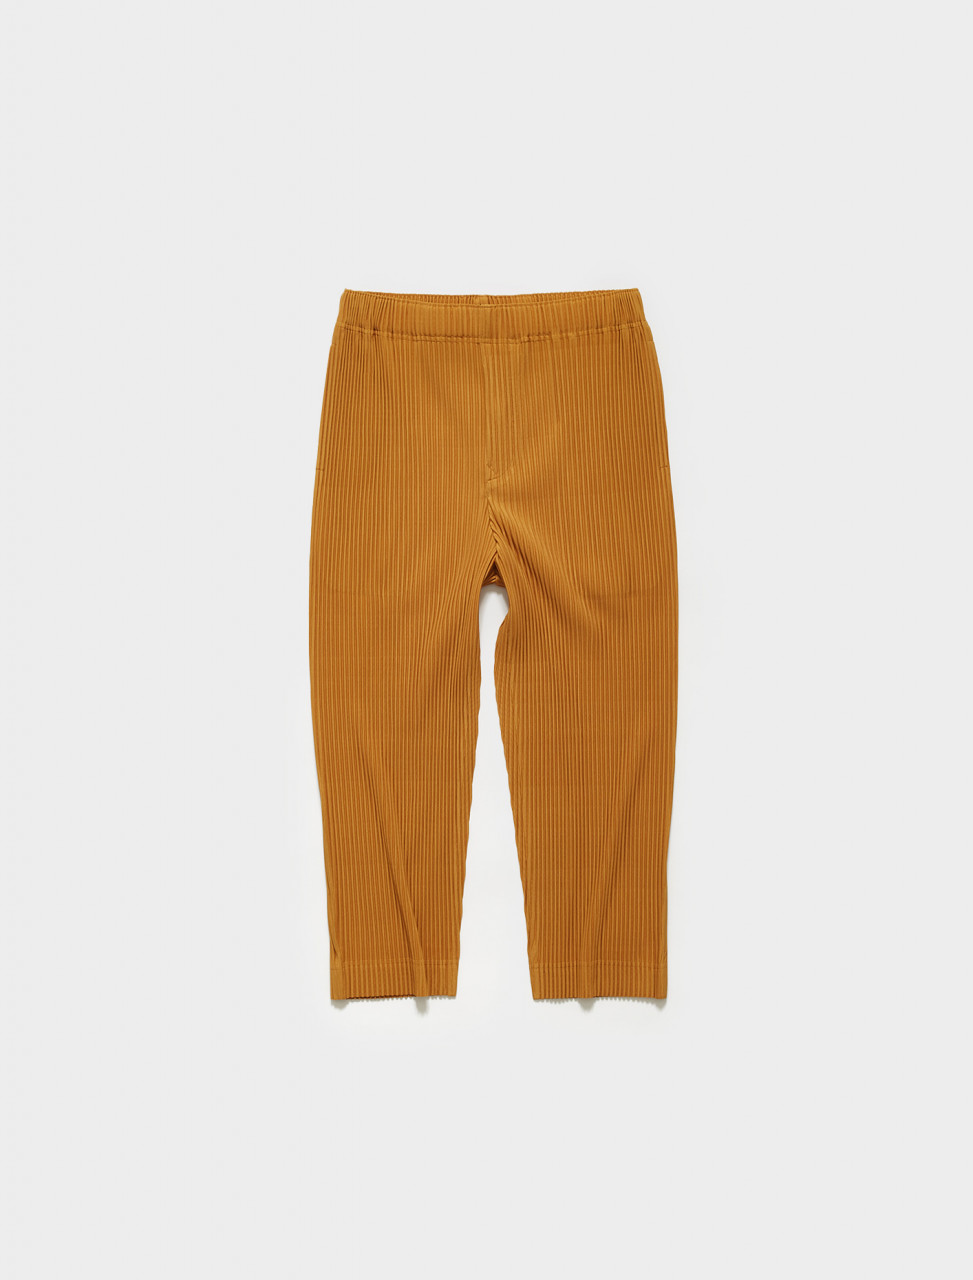 HP16JF123-55 HOMME PLISSE ISSEY MIYAKE Pleated Trousers in Yellow Ochre